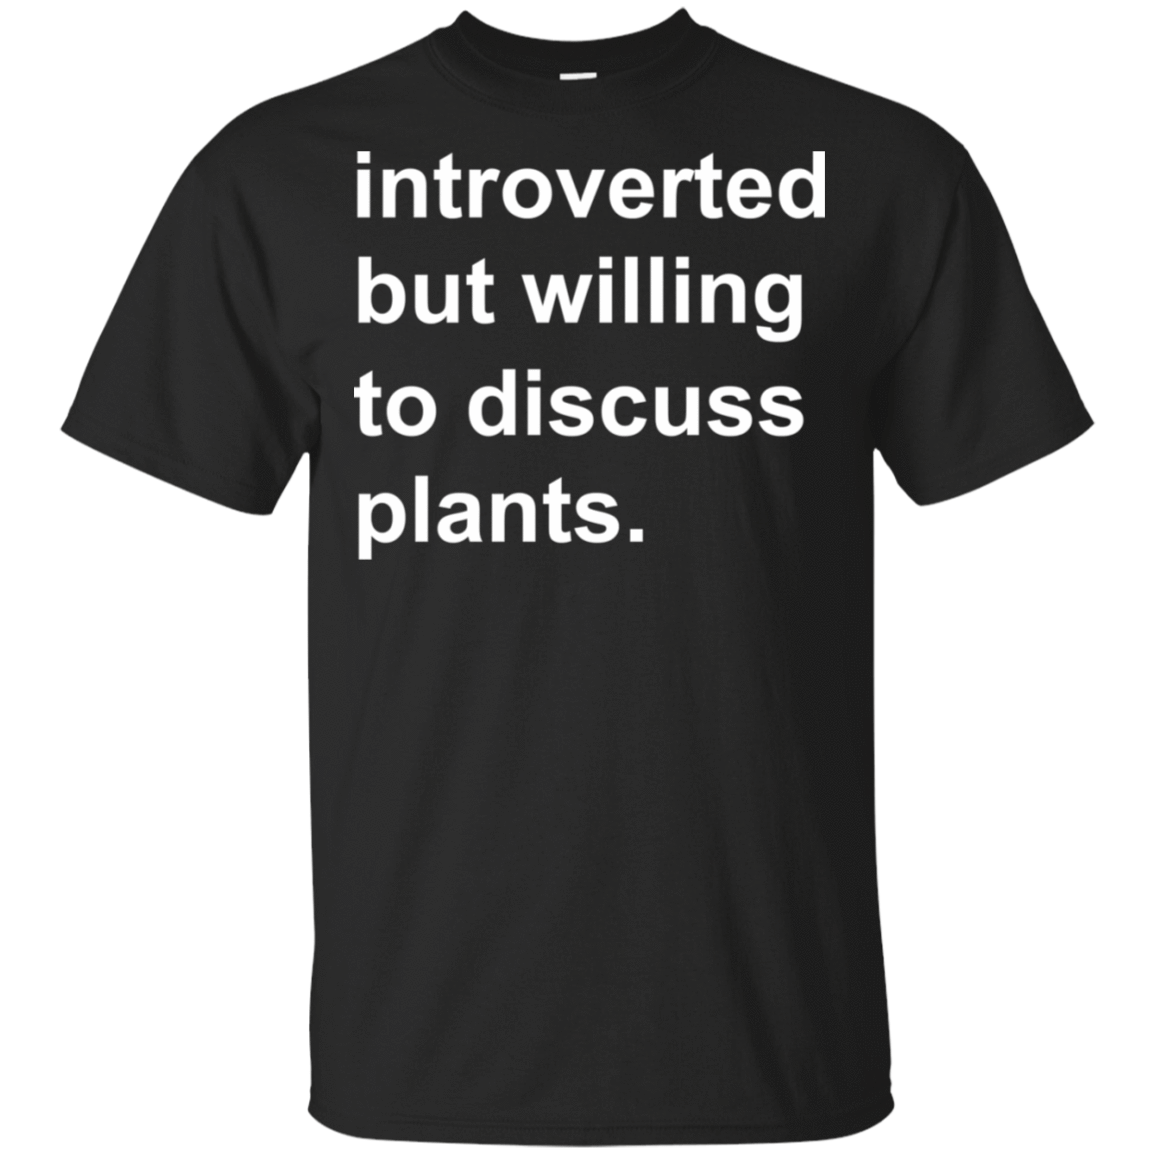 Introverted But Willing To Discuss Plants 22-113-73889870-252 - Tee Ript